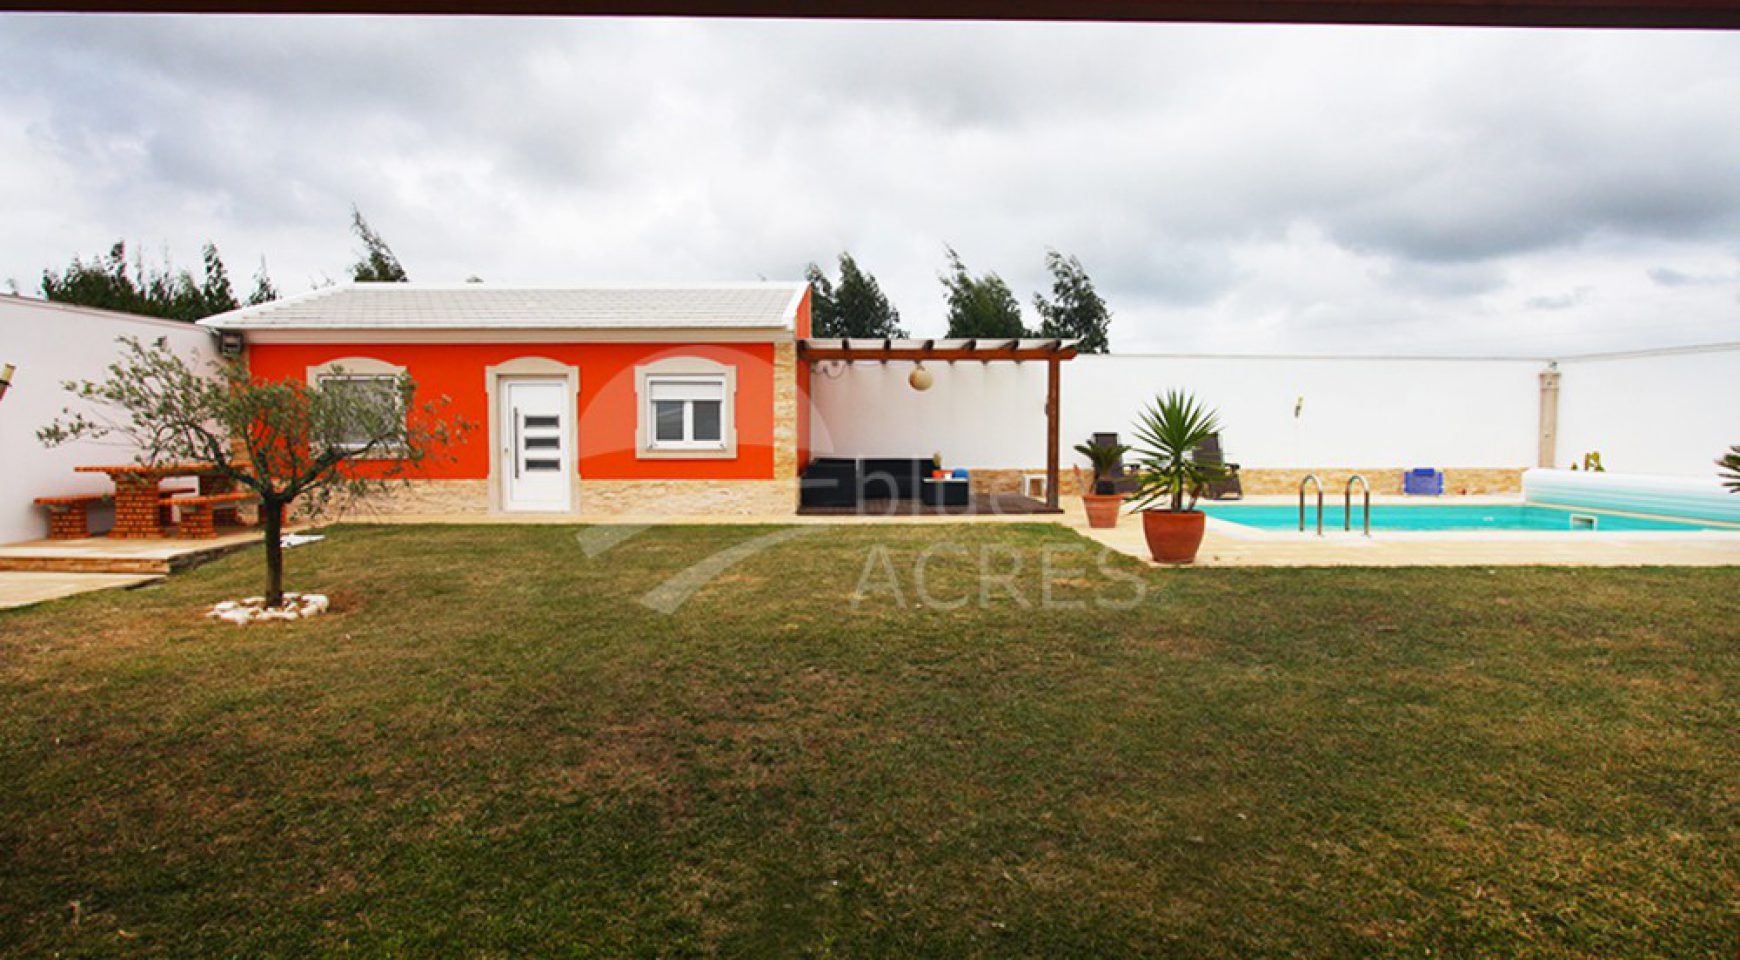 1020, detached 3 bedroom villa with annex T1, pool and gym